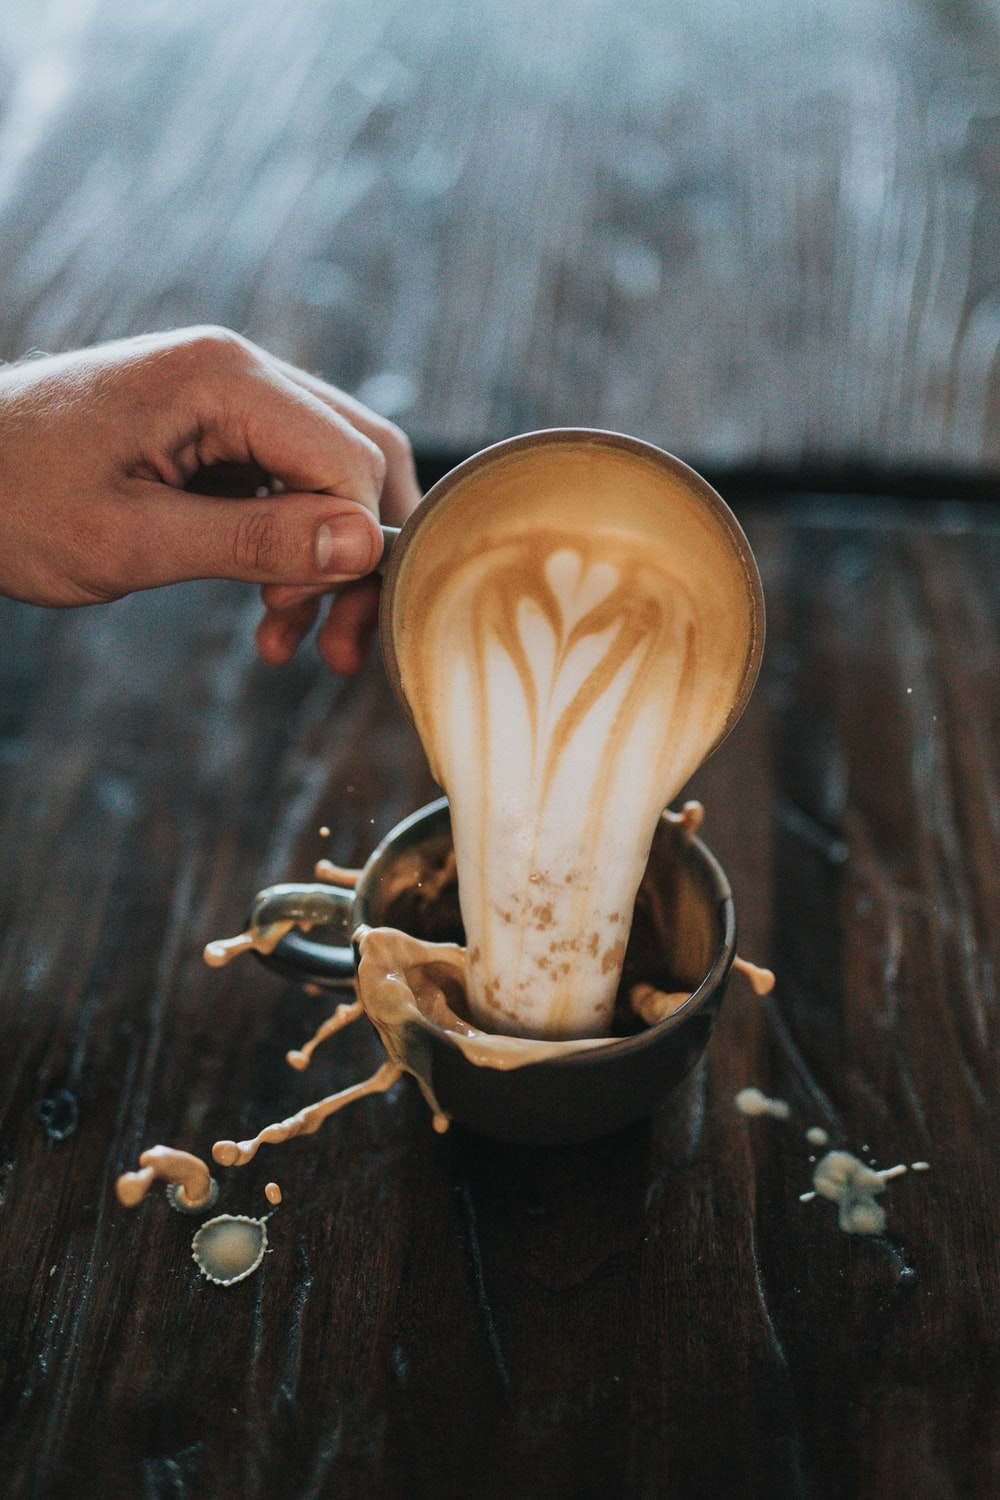 man pouring cappuccino on another cup